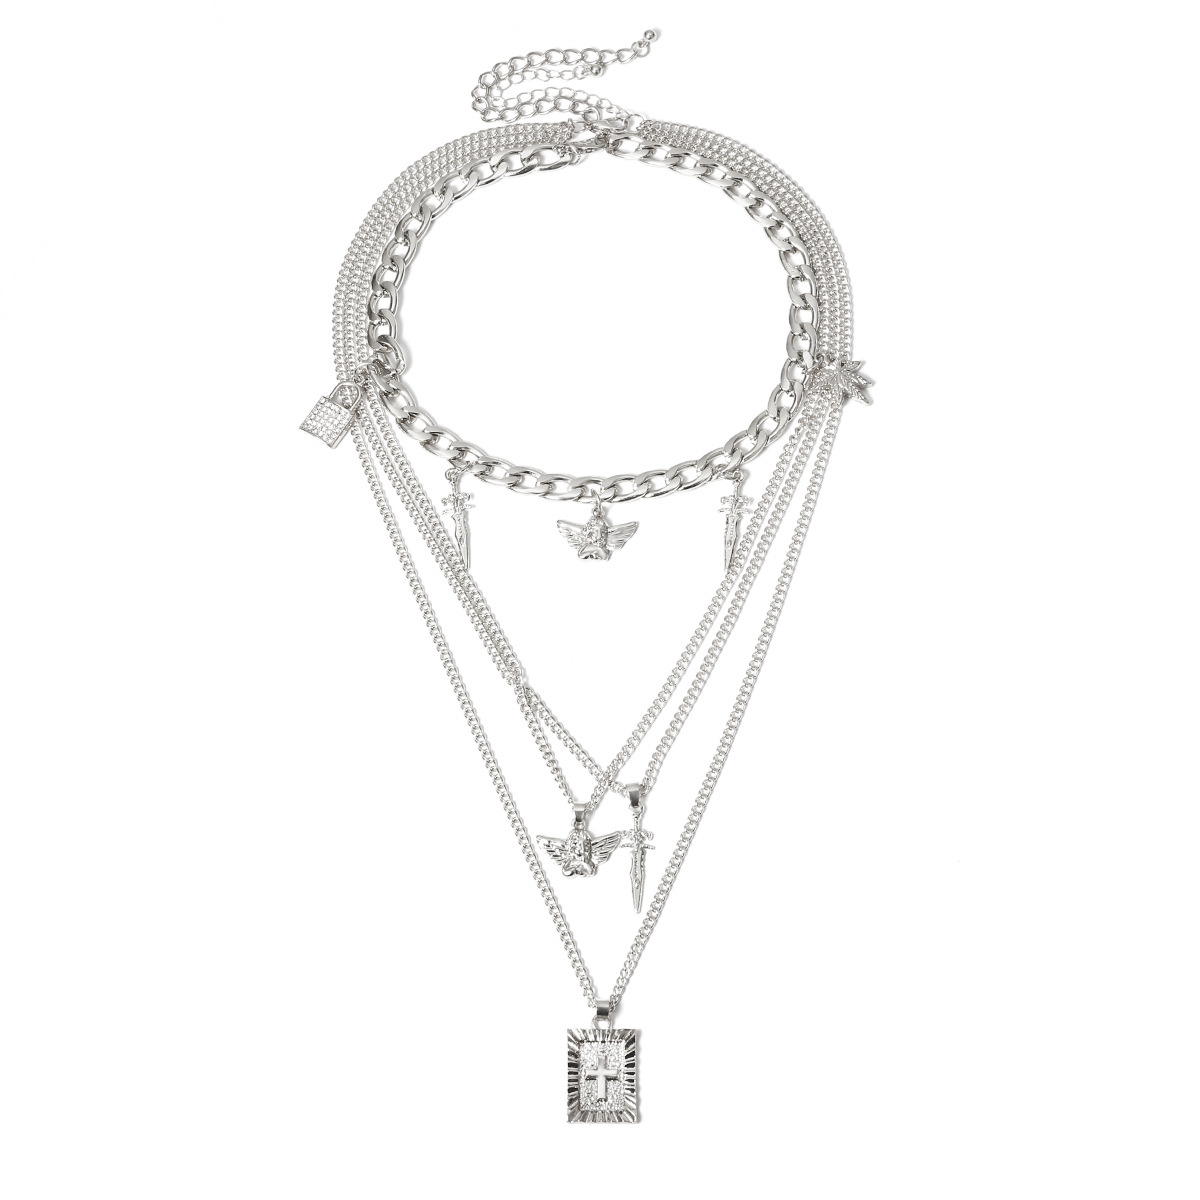 Fashion jewelry retro cross-locked micro-inlaid ornaments personalized diverse little angel sword-shaped necklace NHXR217237